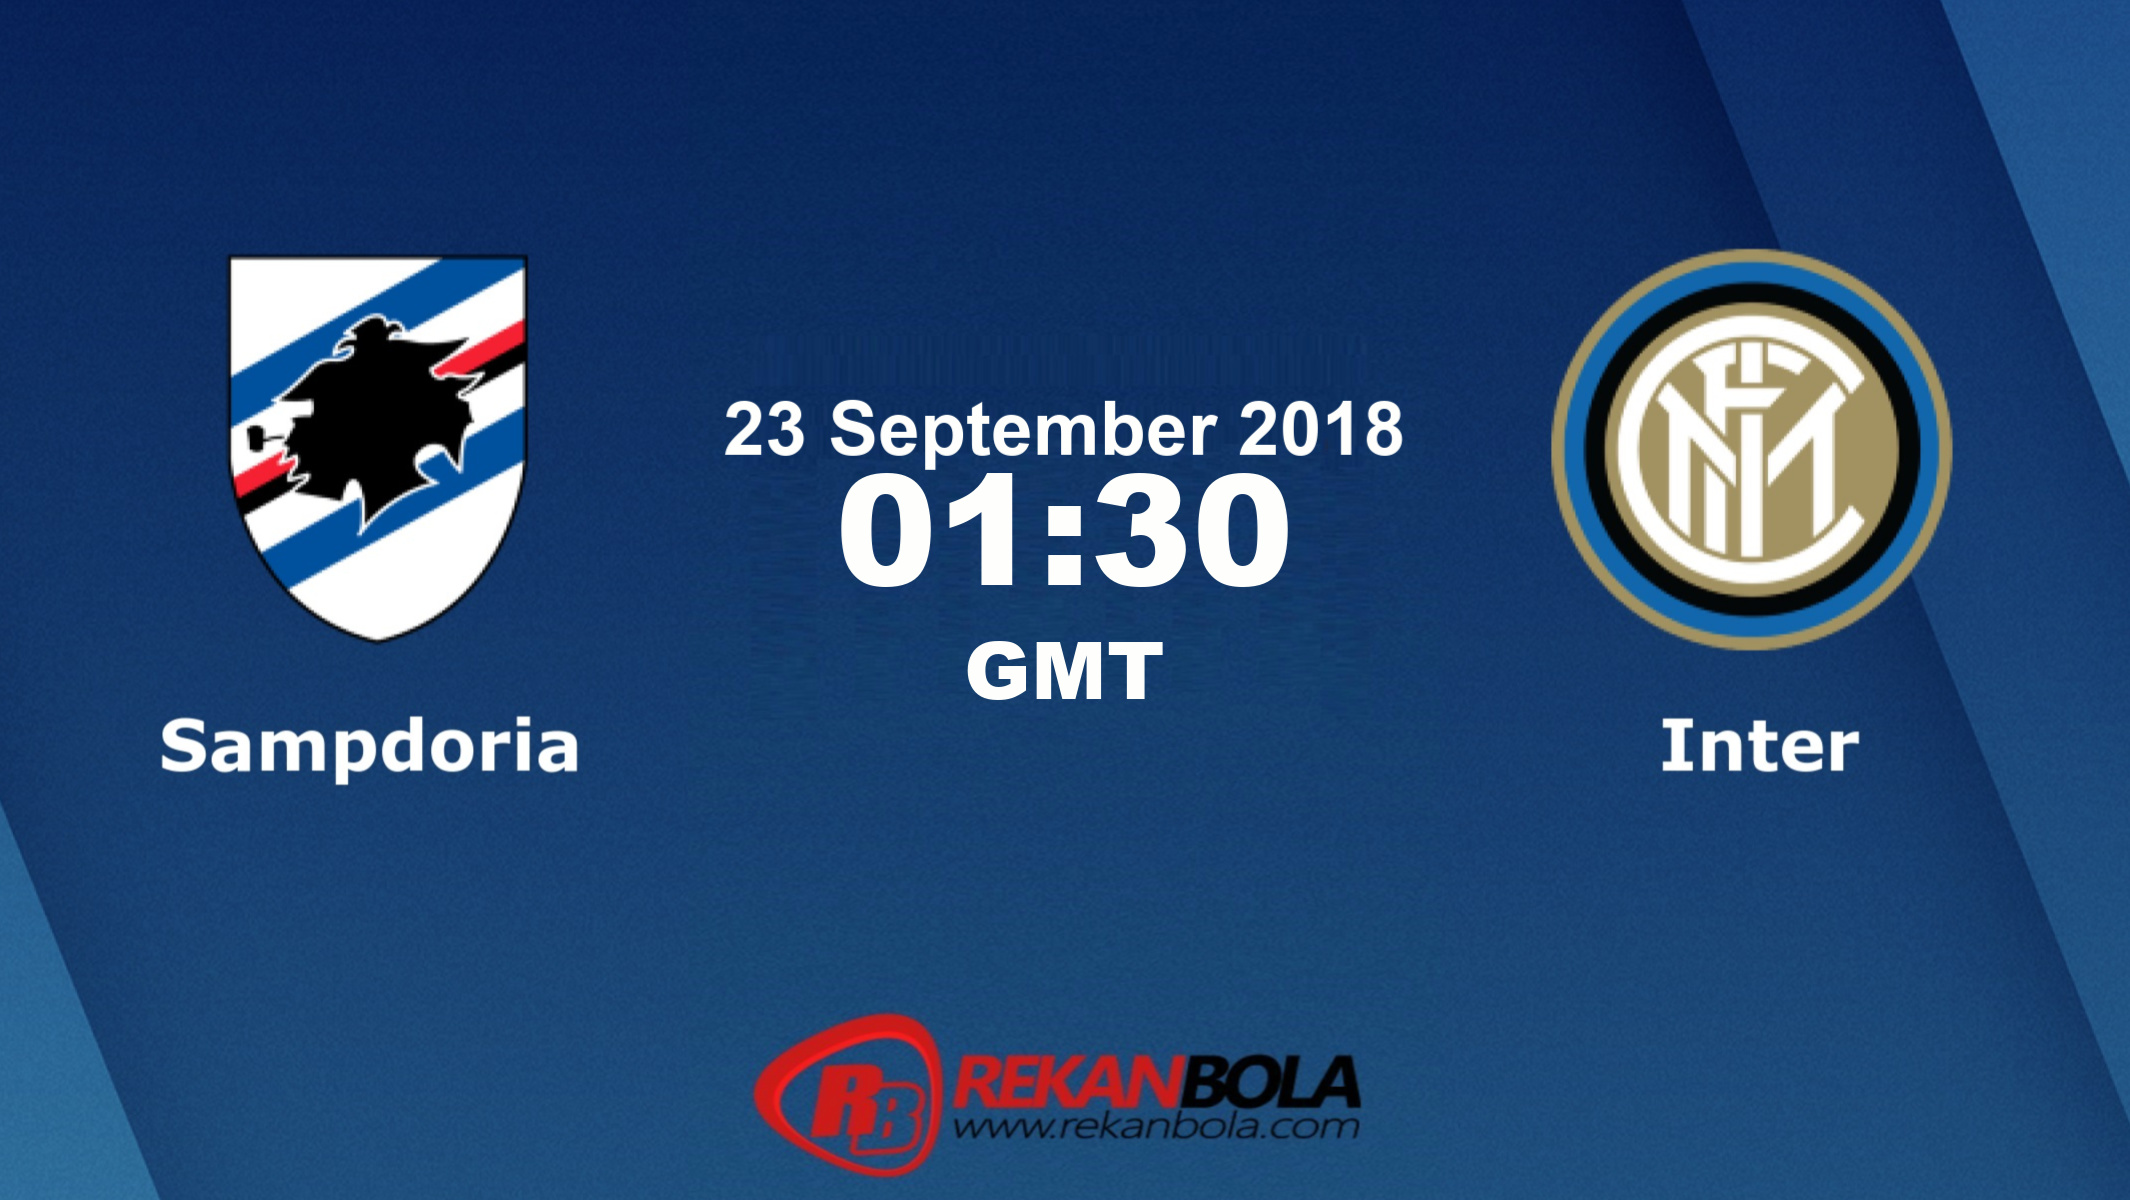 Nonton Siaran Live Streaming Sampdoria Vs Inter 23 September 2018